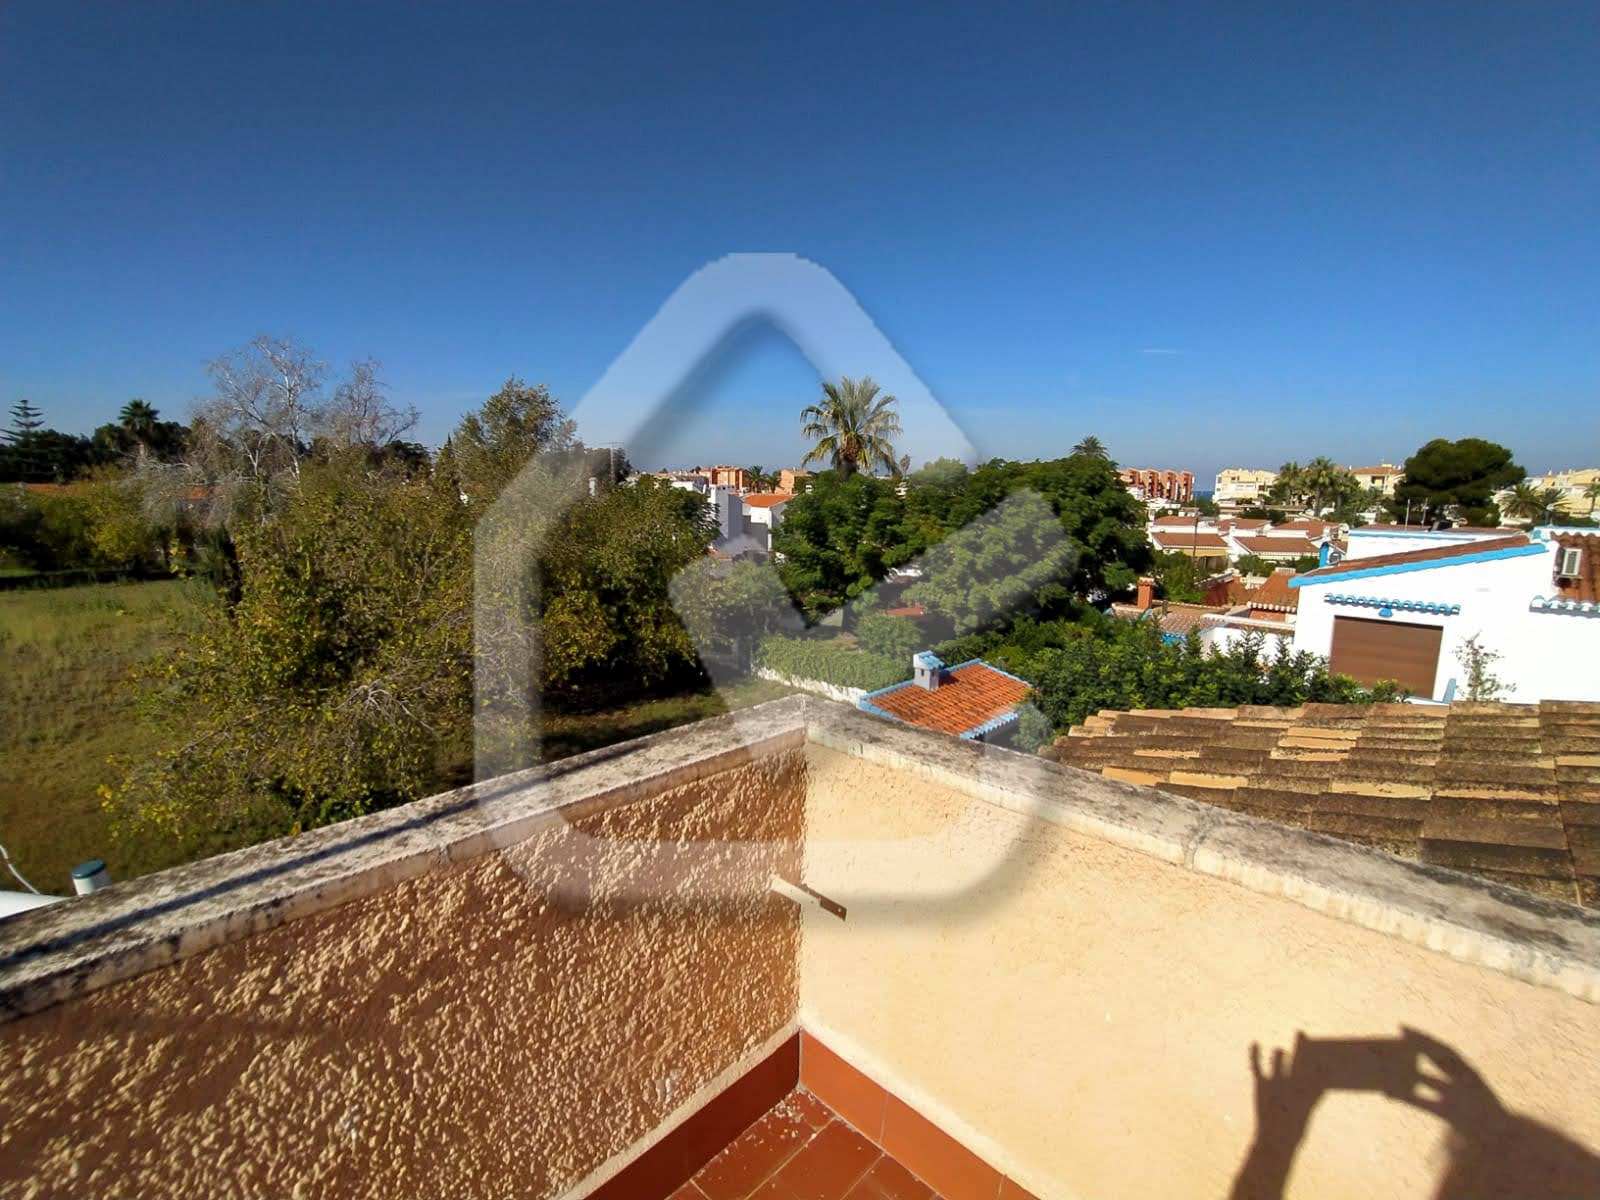 Photo  number 30: Villa in Sale in Denia, Area Marinas, Sector Bassetes-bovetes. Ref. 5-36-14957